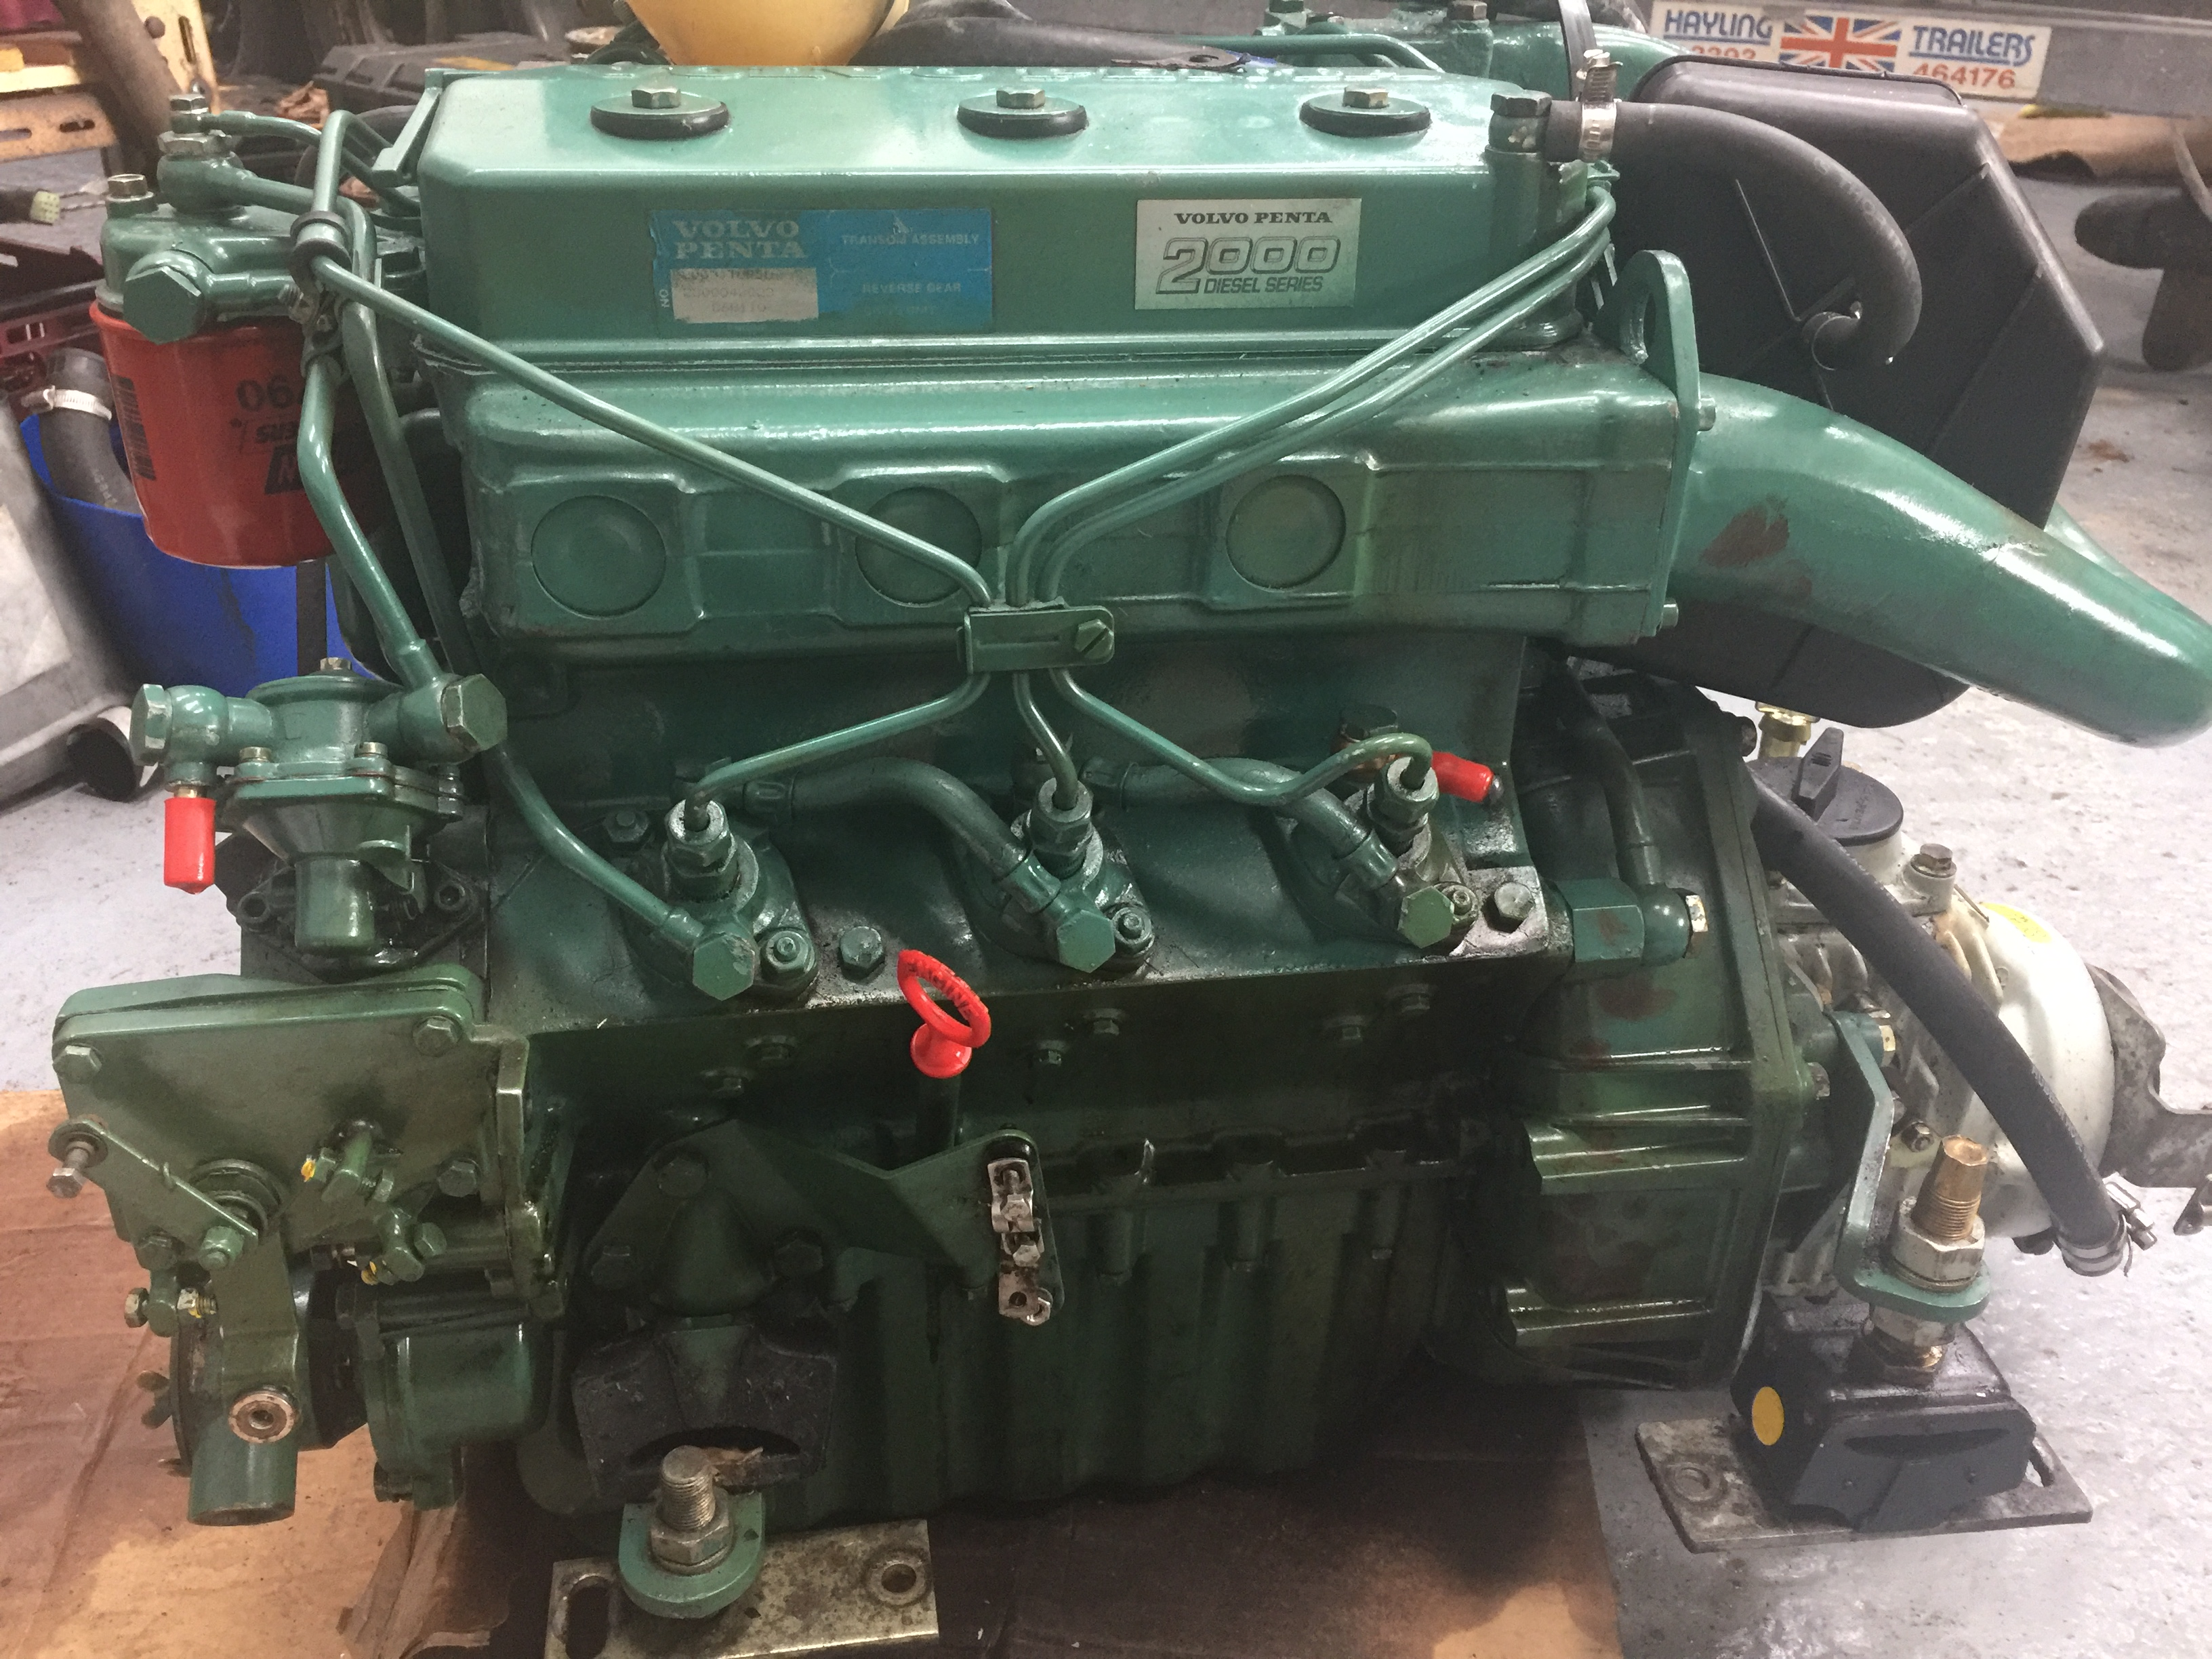 Volvo penta 2003T 43 Hp marine engine and gear box - Used - Marine Engineering Services